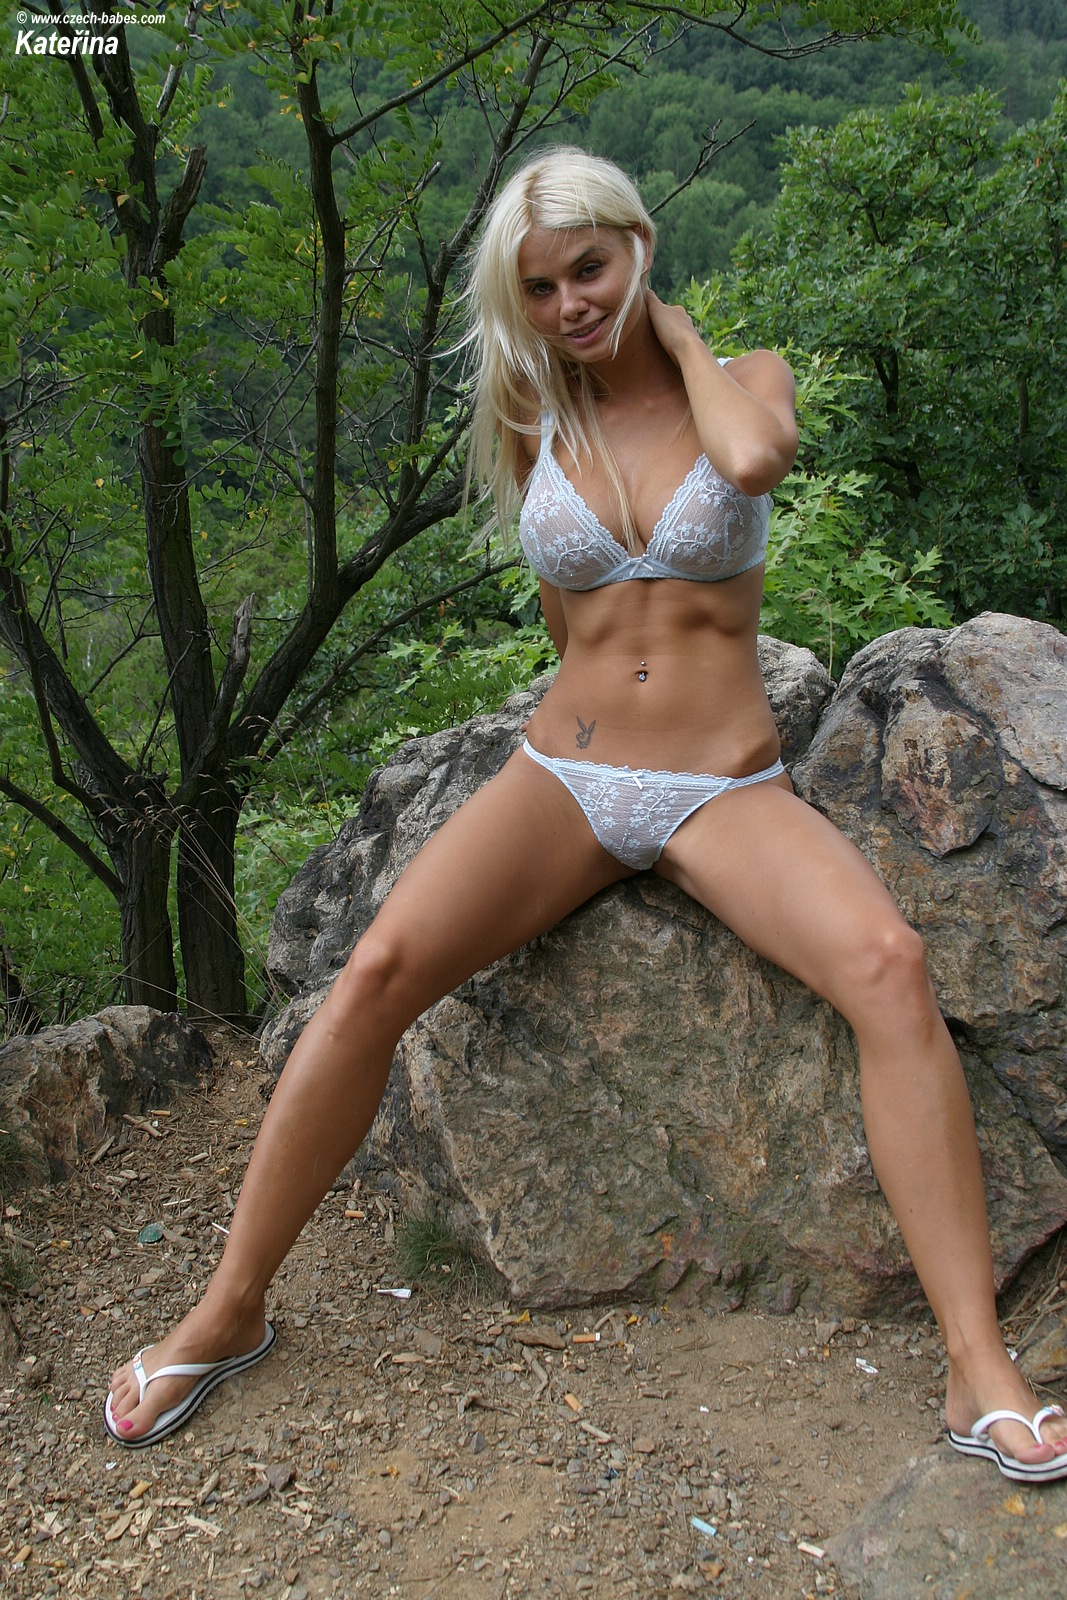 katerina-nude-mountain-lingerie-huge-tits-blonde-04